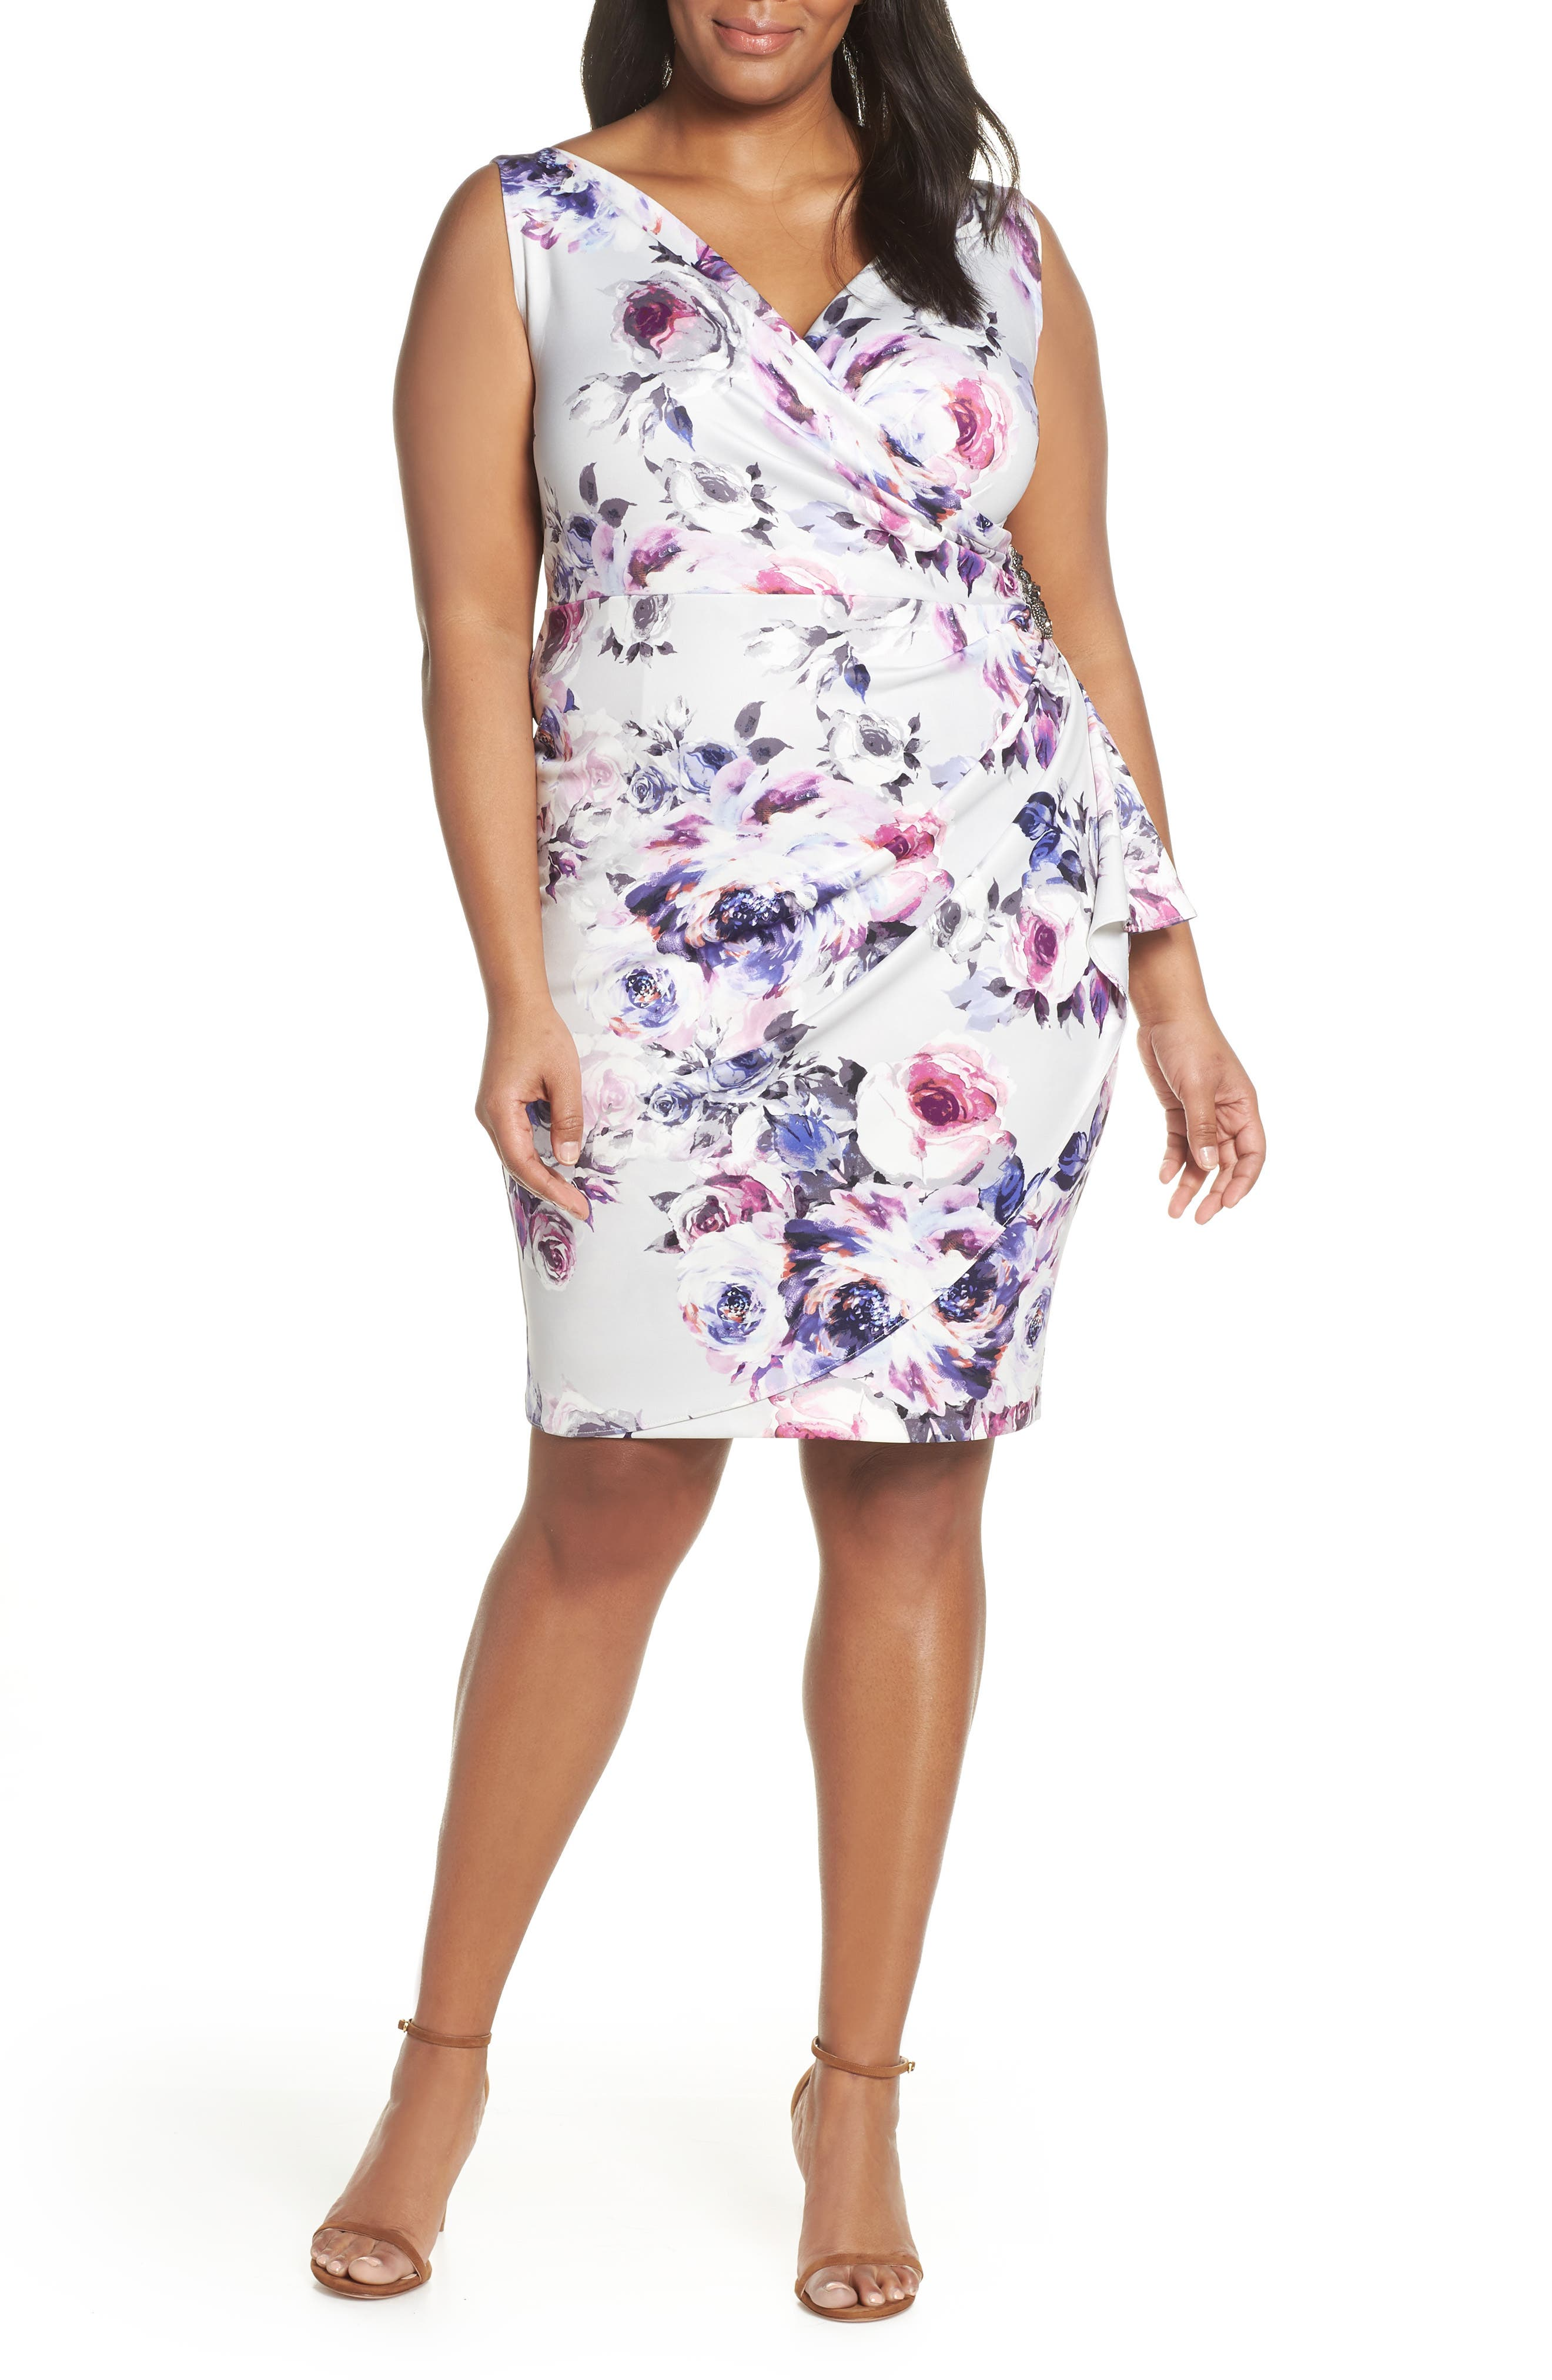 Plus Size Alex Evenings Side Ruched Cocktail Dress, Ivory